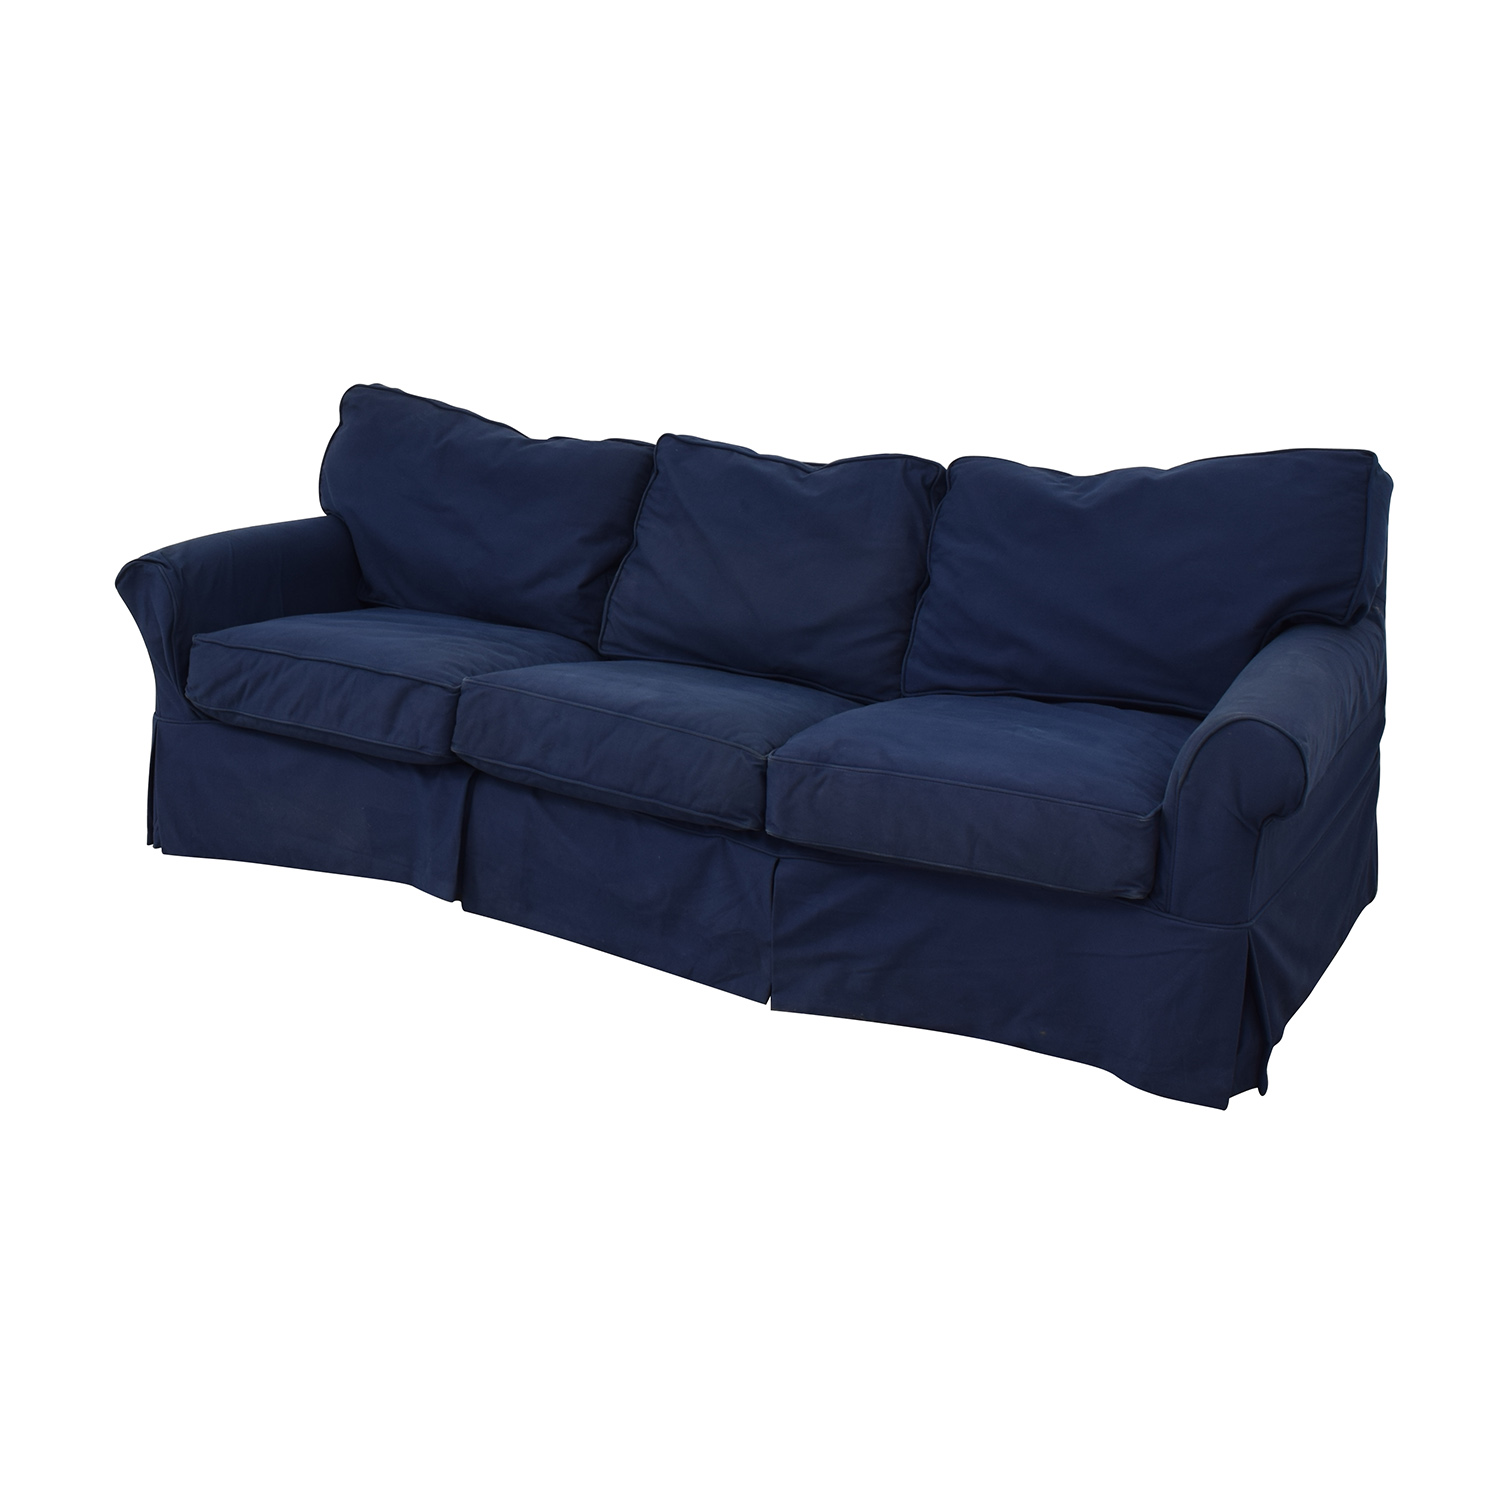 73% OFF - Crate & Barrel Crate & Barrel Sleeper Sofa / Sofas